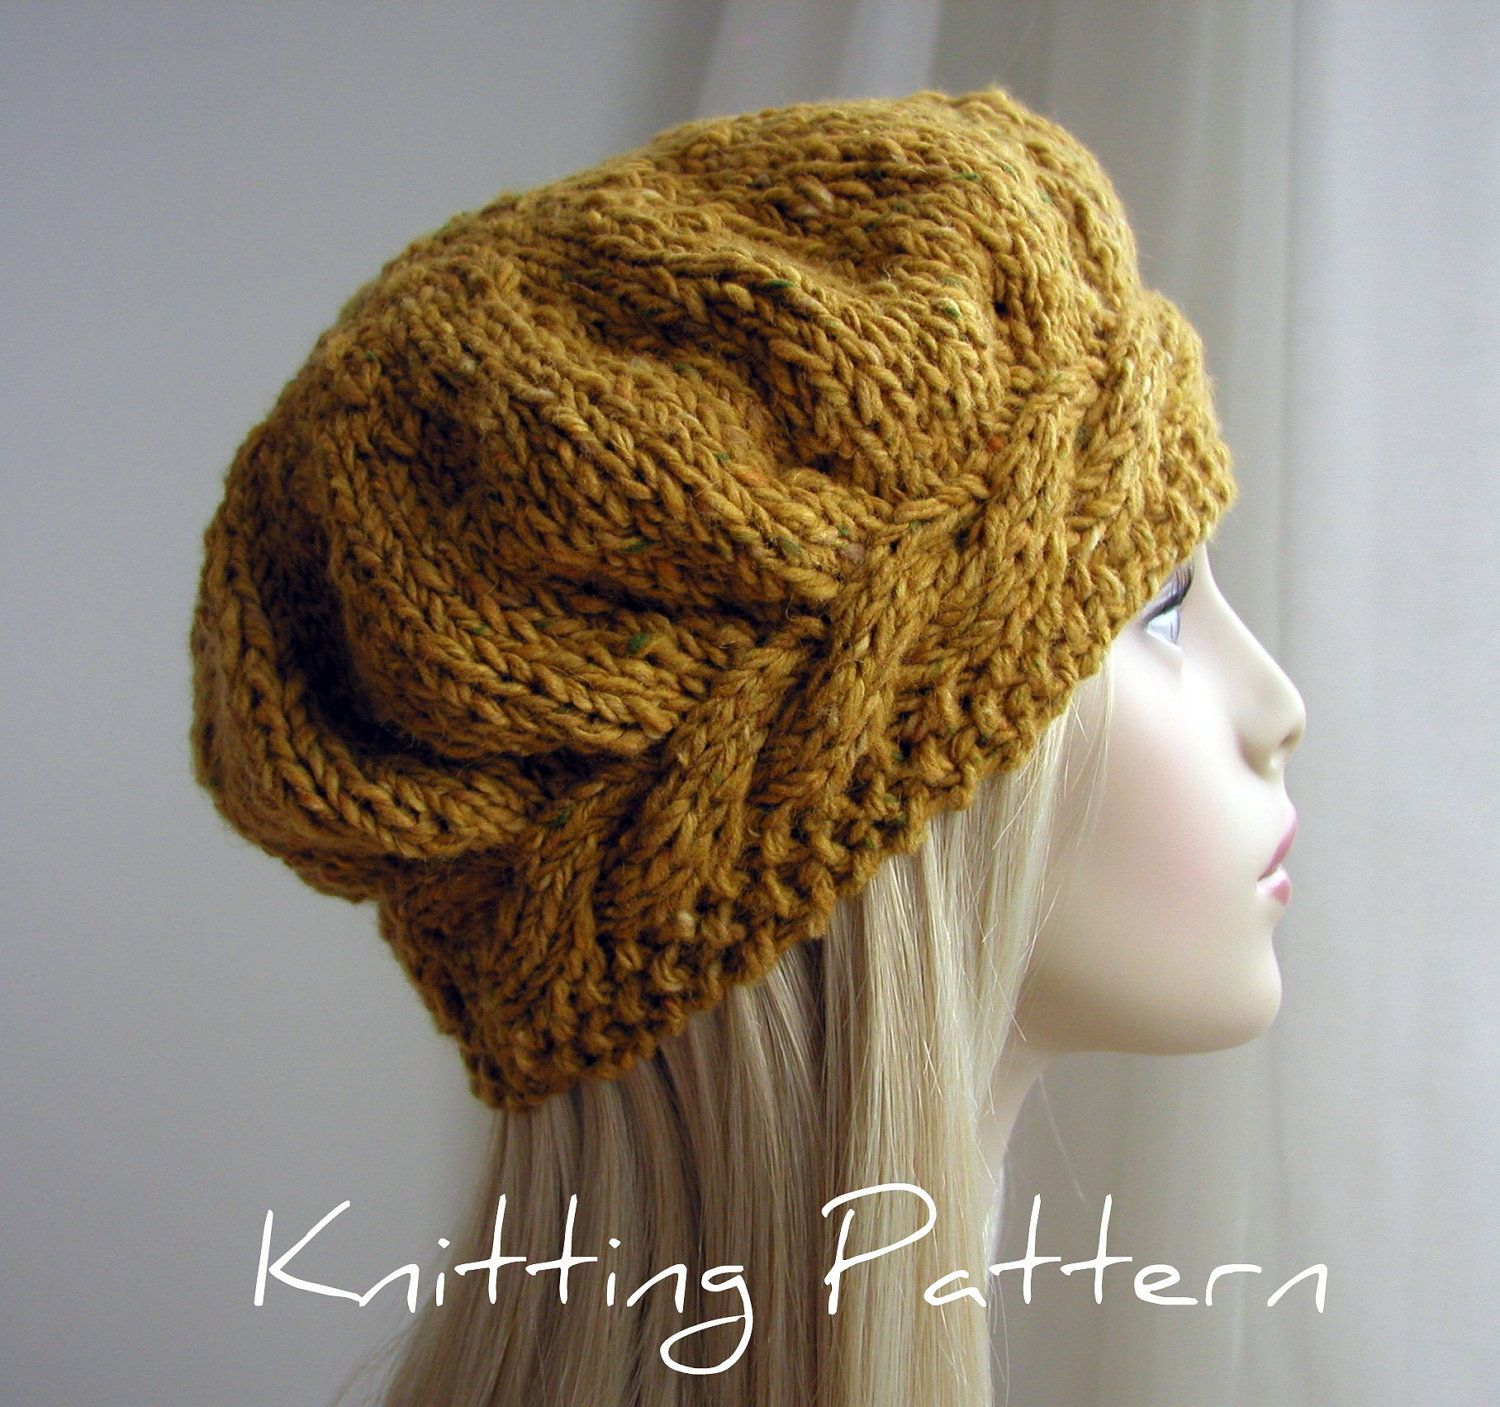 Simple Knitting Patterns Free : Free Easy Knitting Hat Patterns KNIT PATTERNS BERET   Free Patterns Knitt...